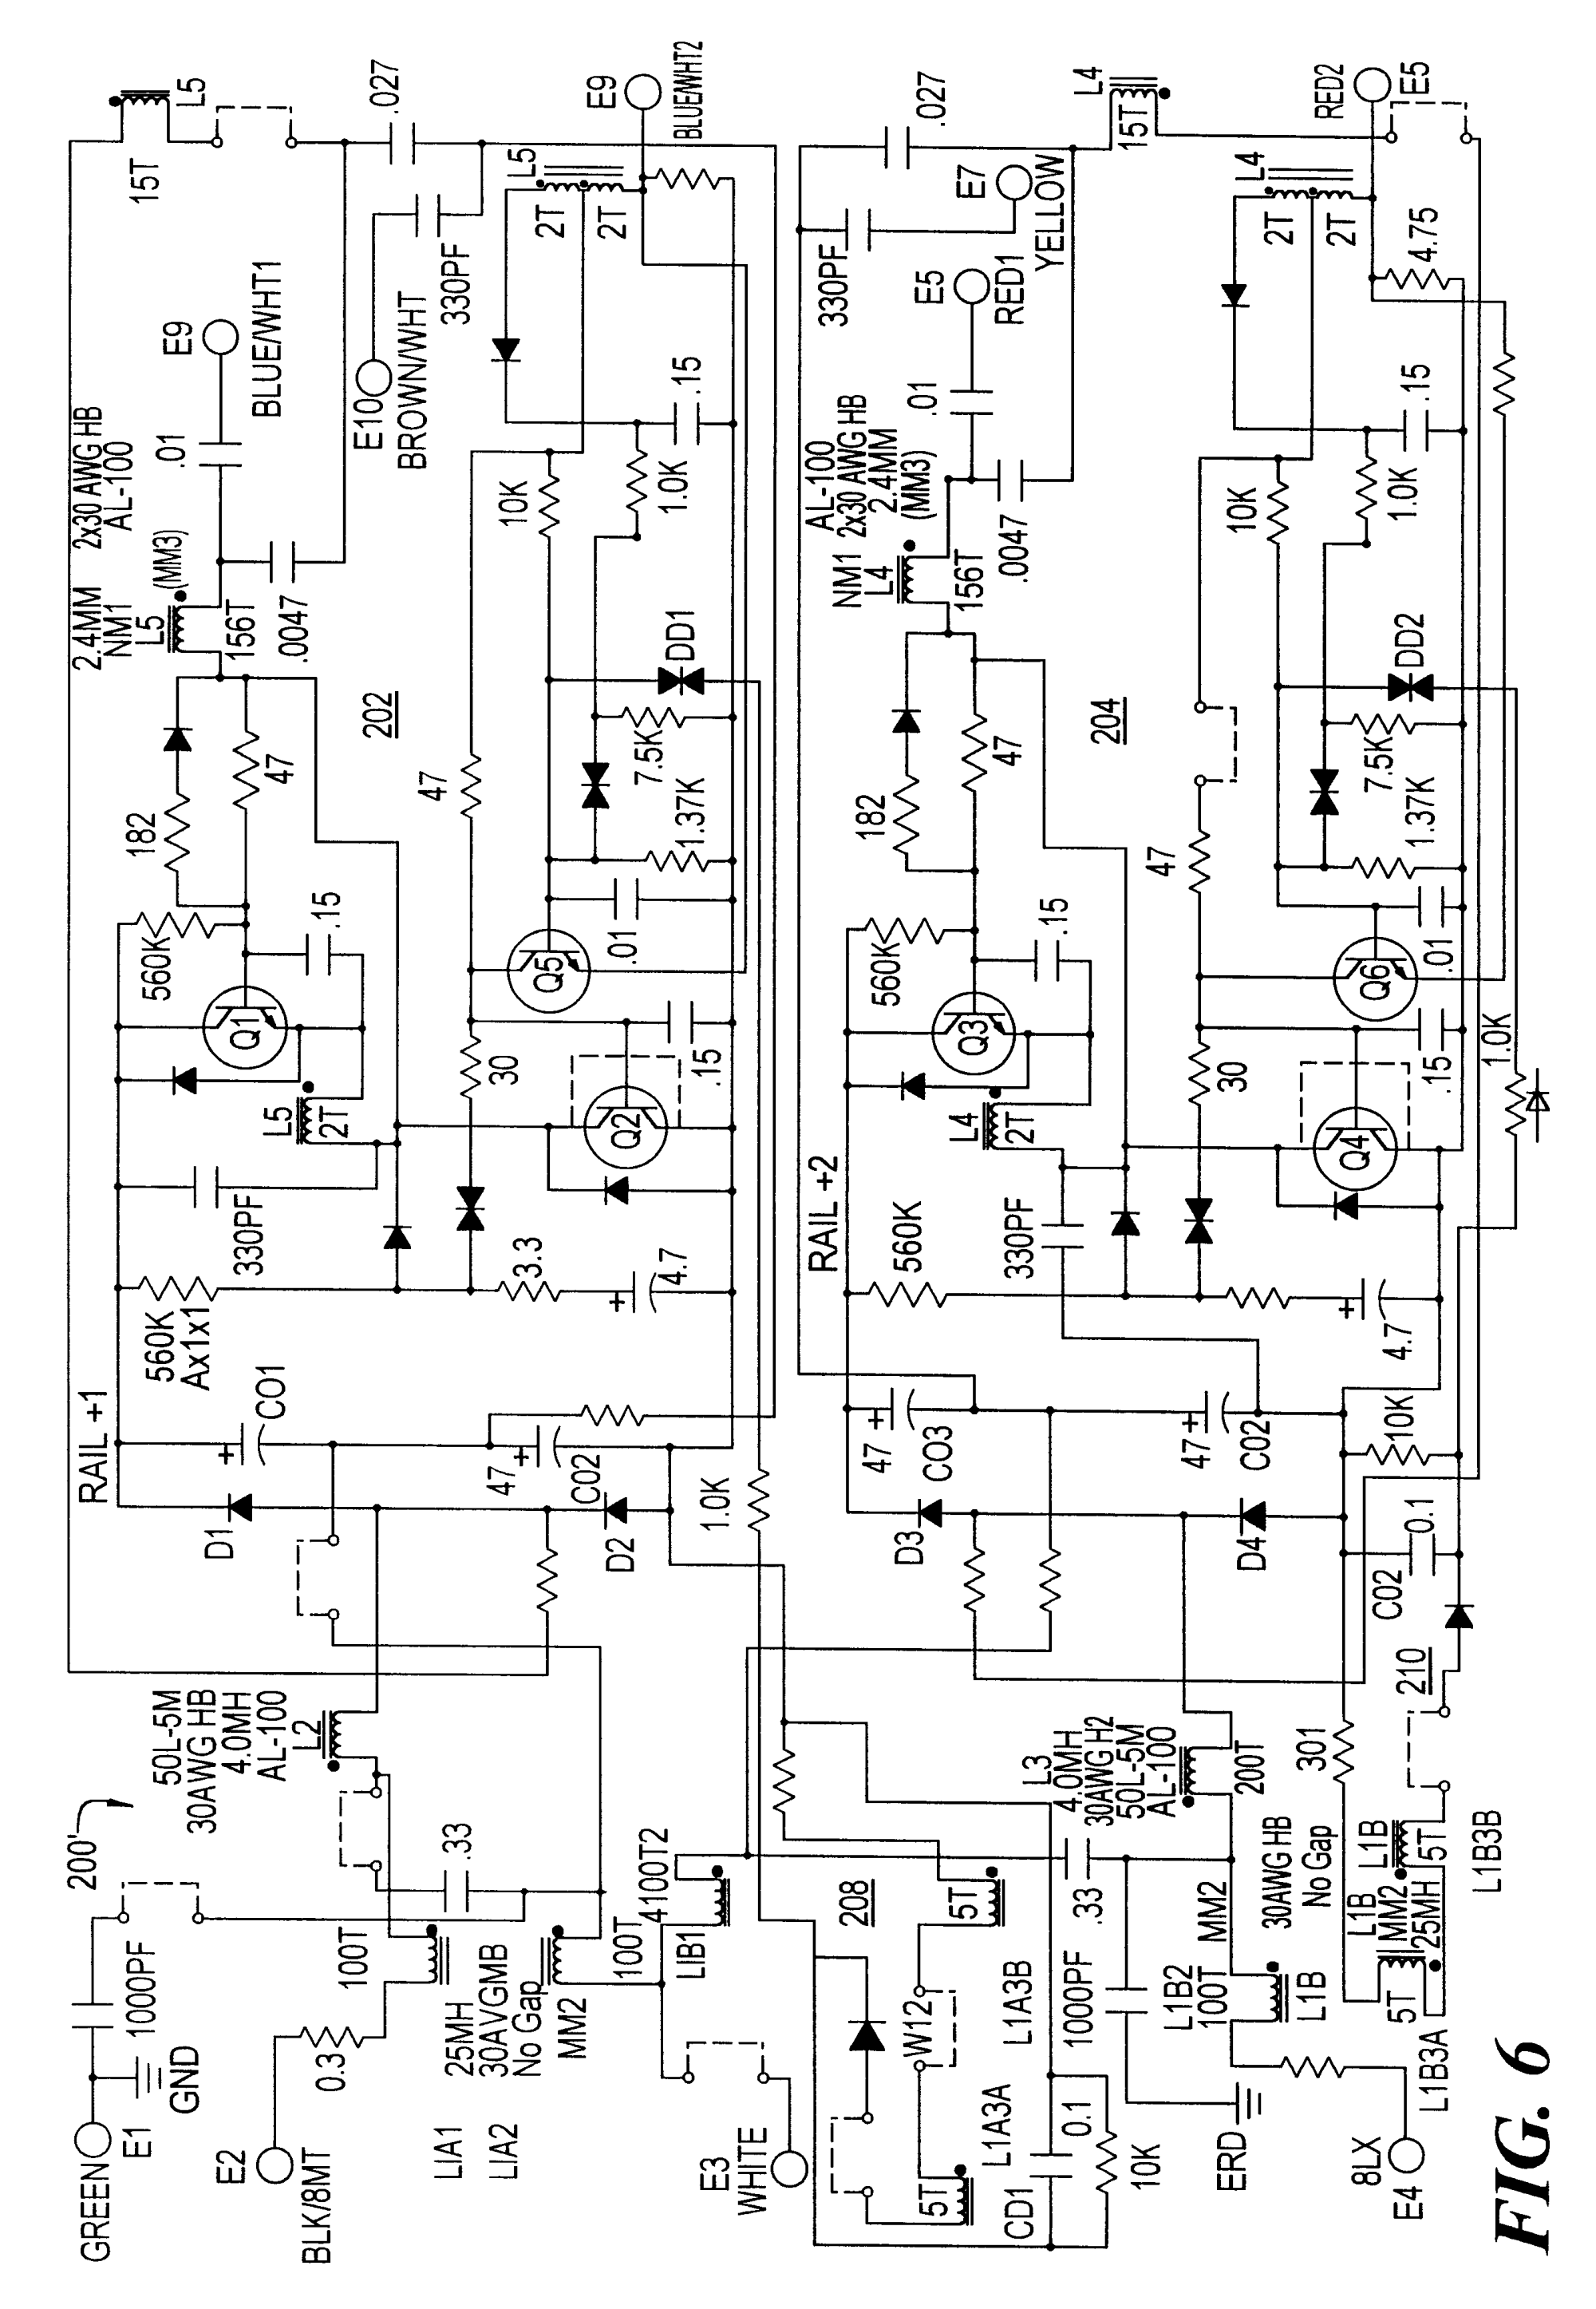 hight resolution of ac tech variable frequency drive manual lenze wiring diagrams